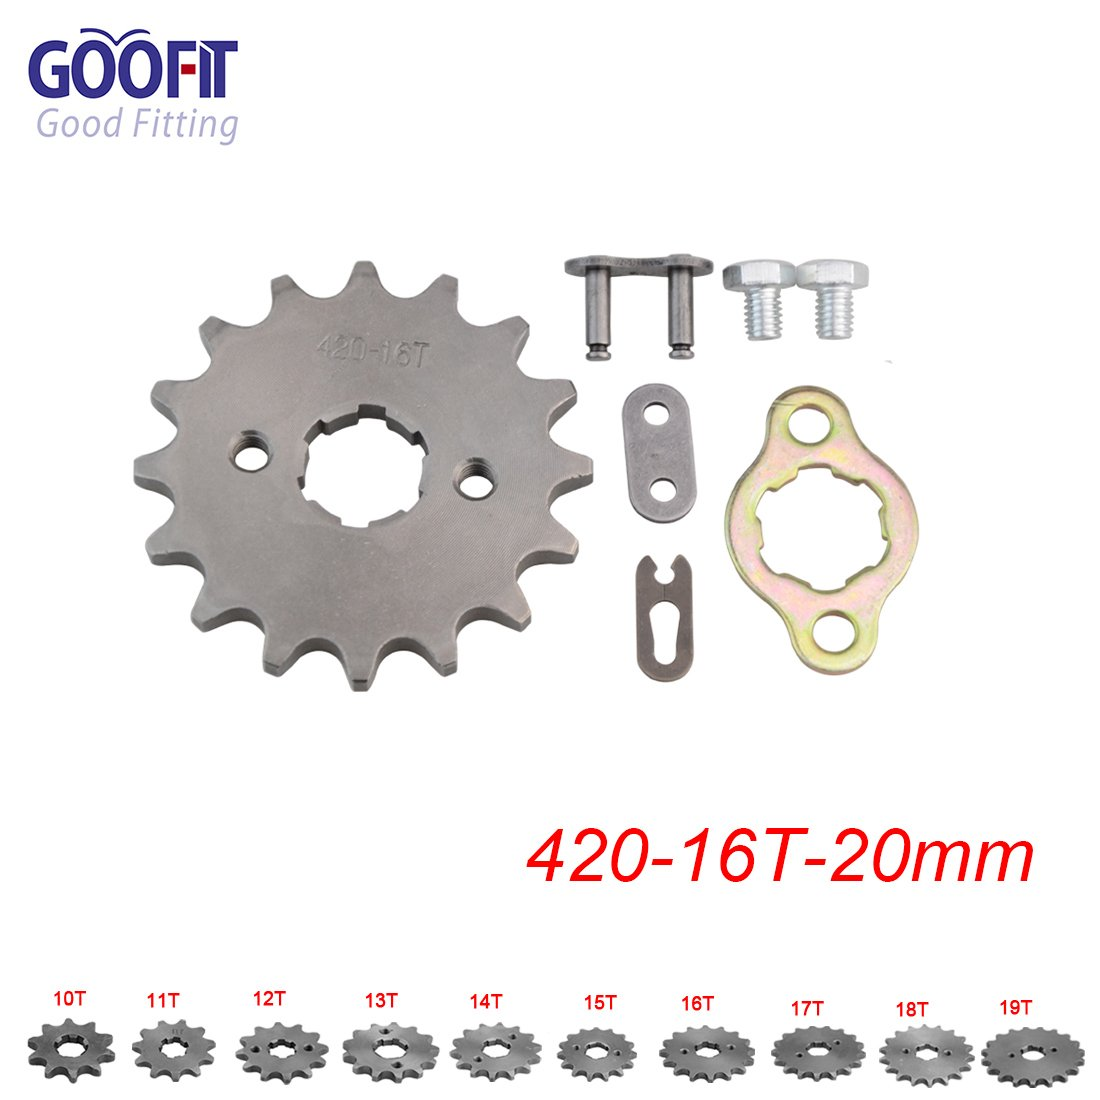 GOOFIT 428 16 20mm Tooth Front Engine motorcycle Sprocket Chain Retainer Plate LockerEngine For 50cc 70cc 90cc 110cc Motorcycle Dirt Bike ATV Quad